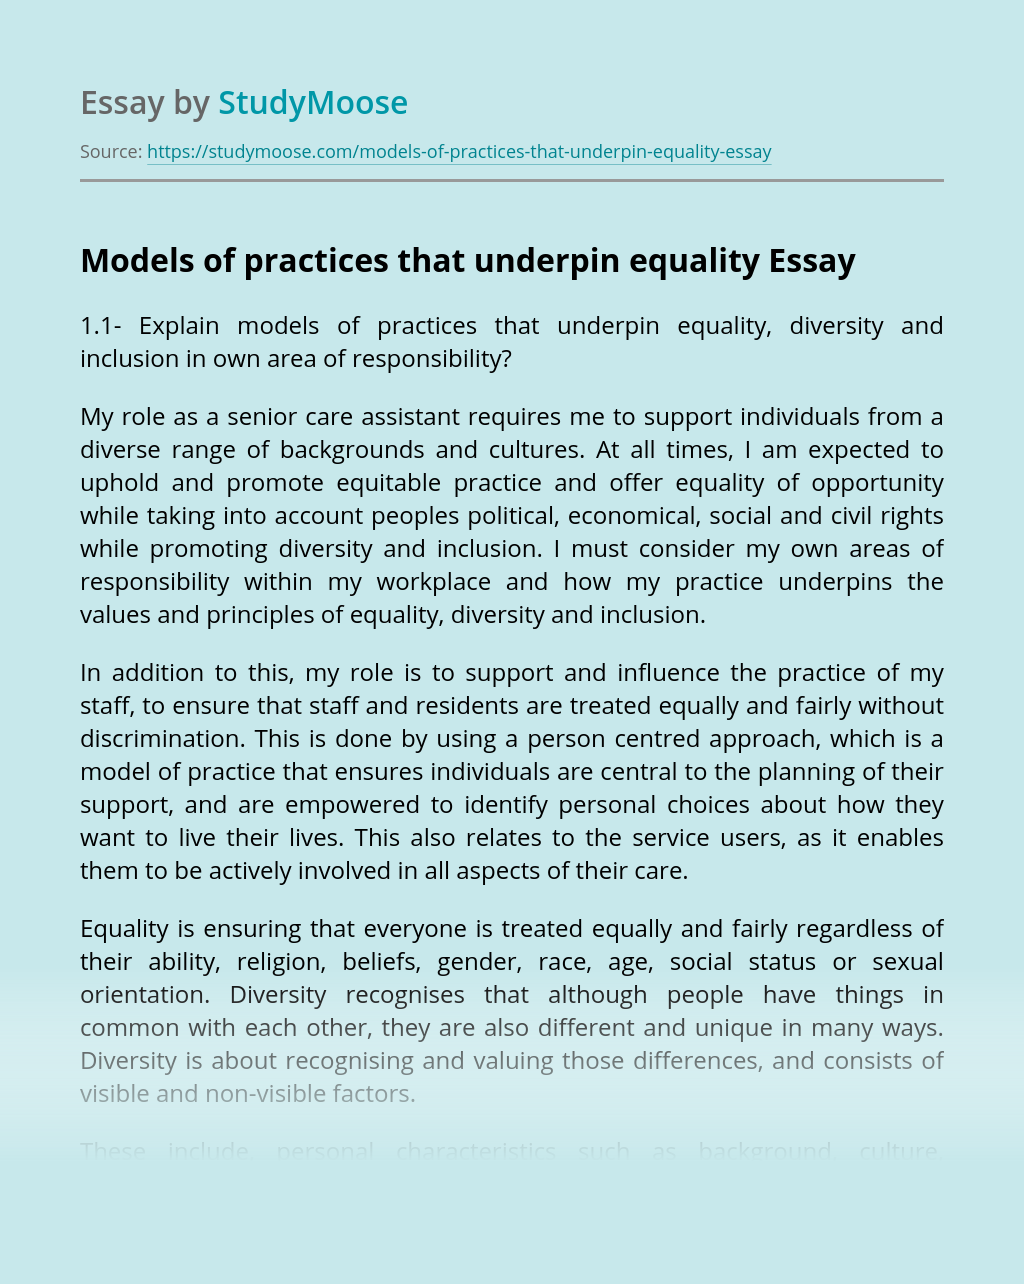 Models of practices that underpin equality